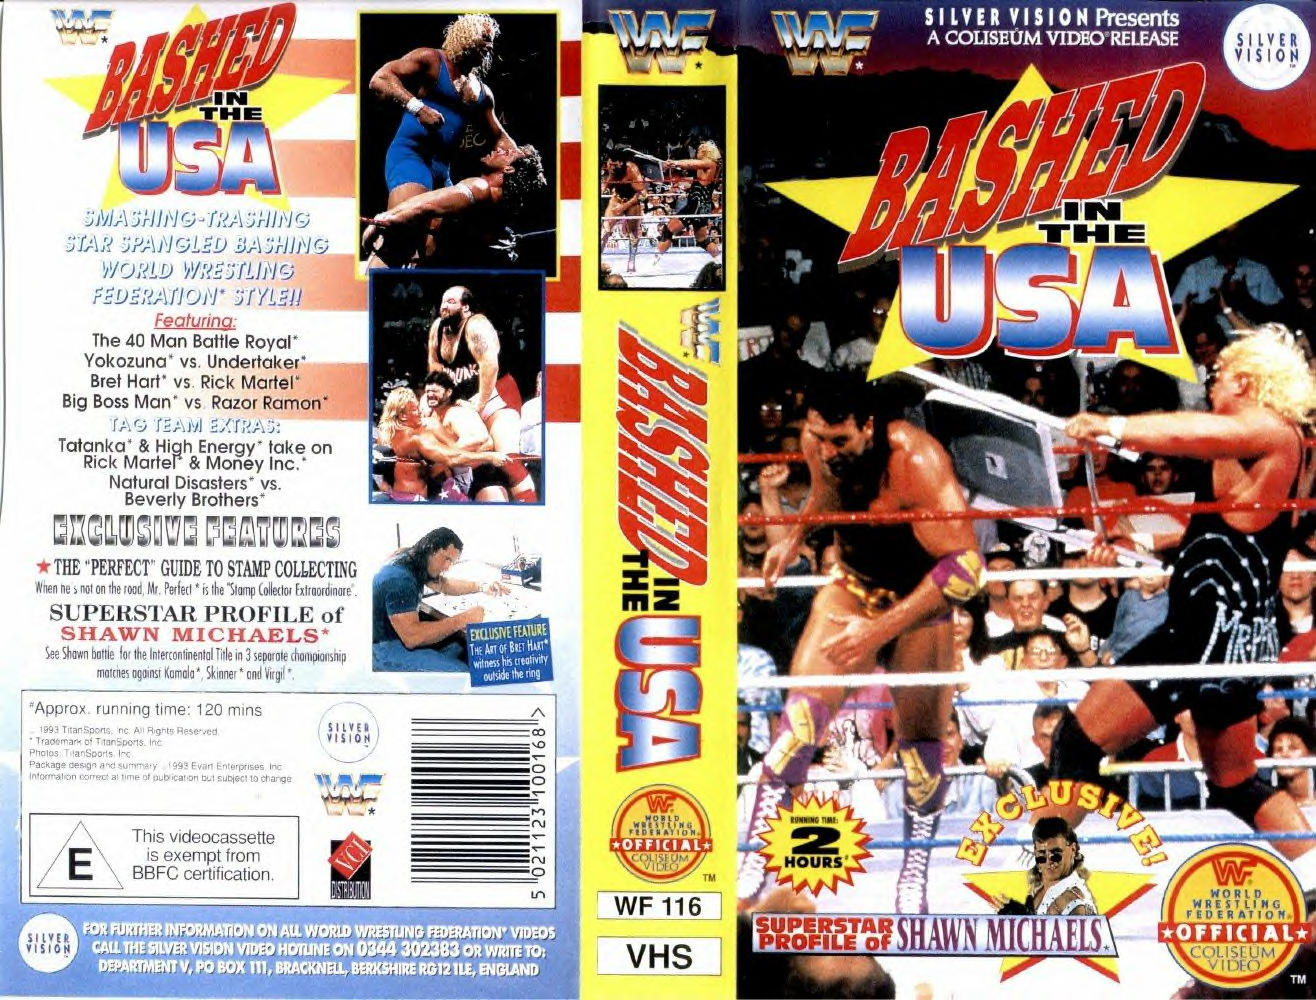 WWF_Bashed_In_The_USA_-_Cover